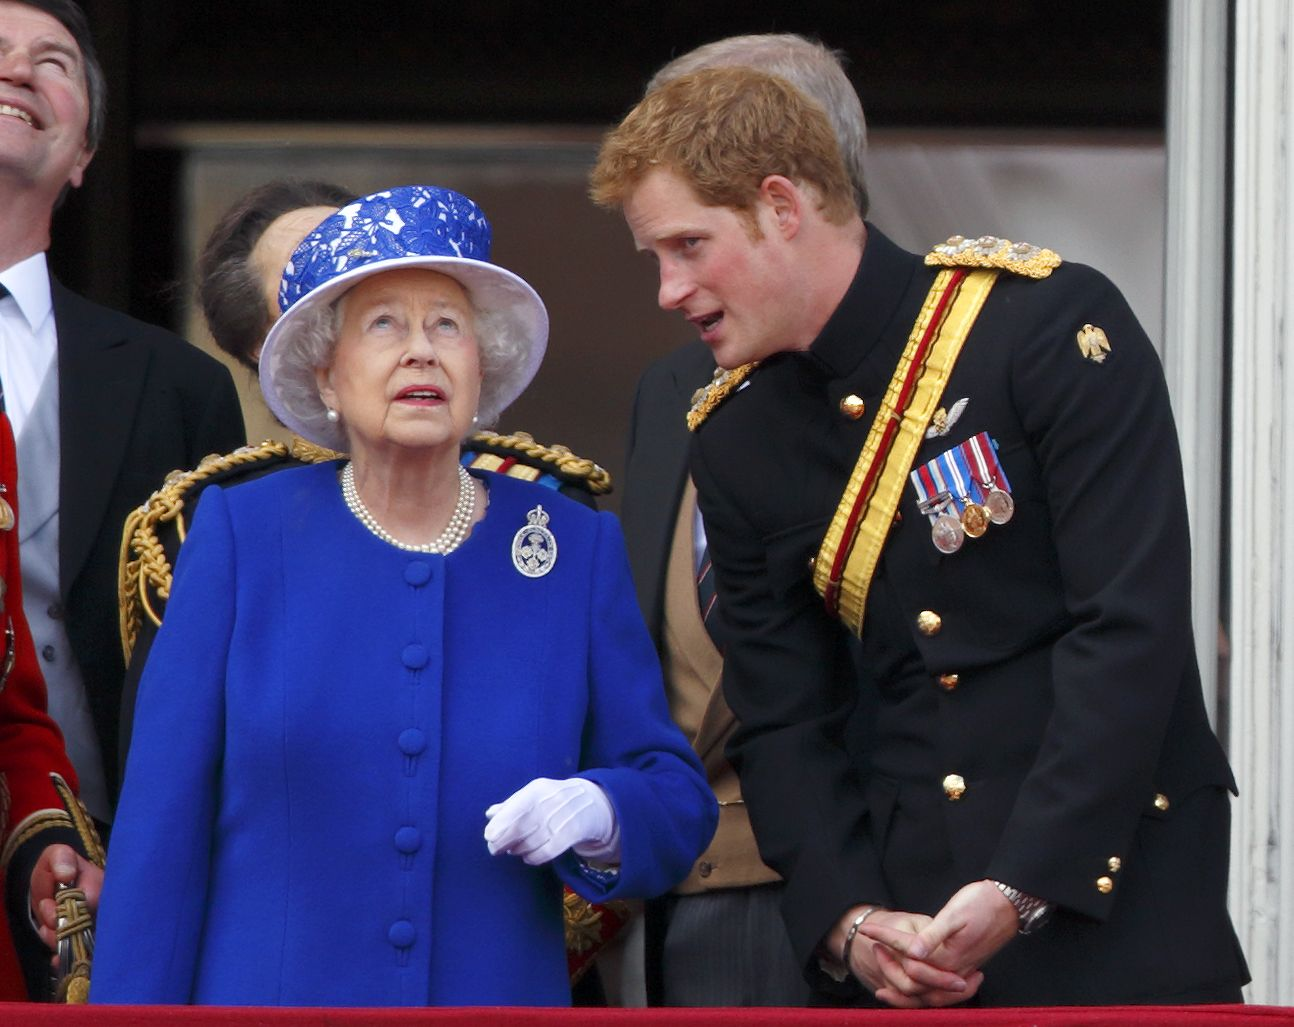 The Queen Forced Prince Harry to Make a Heartbreaking Choice About What to Do with His Life